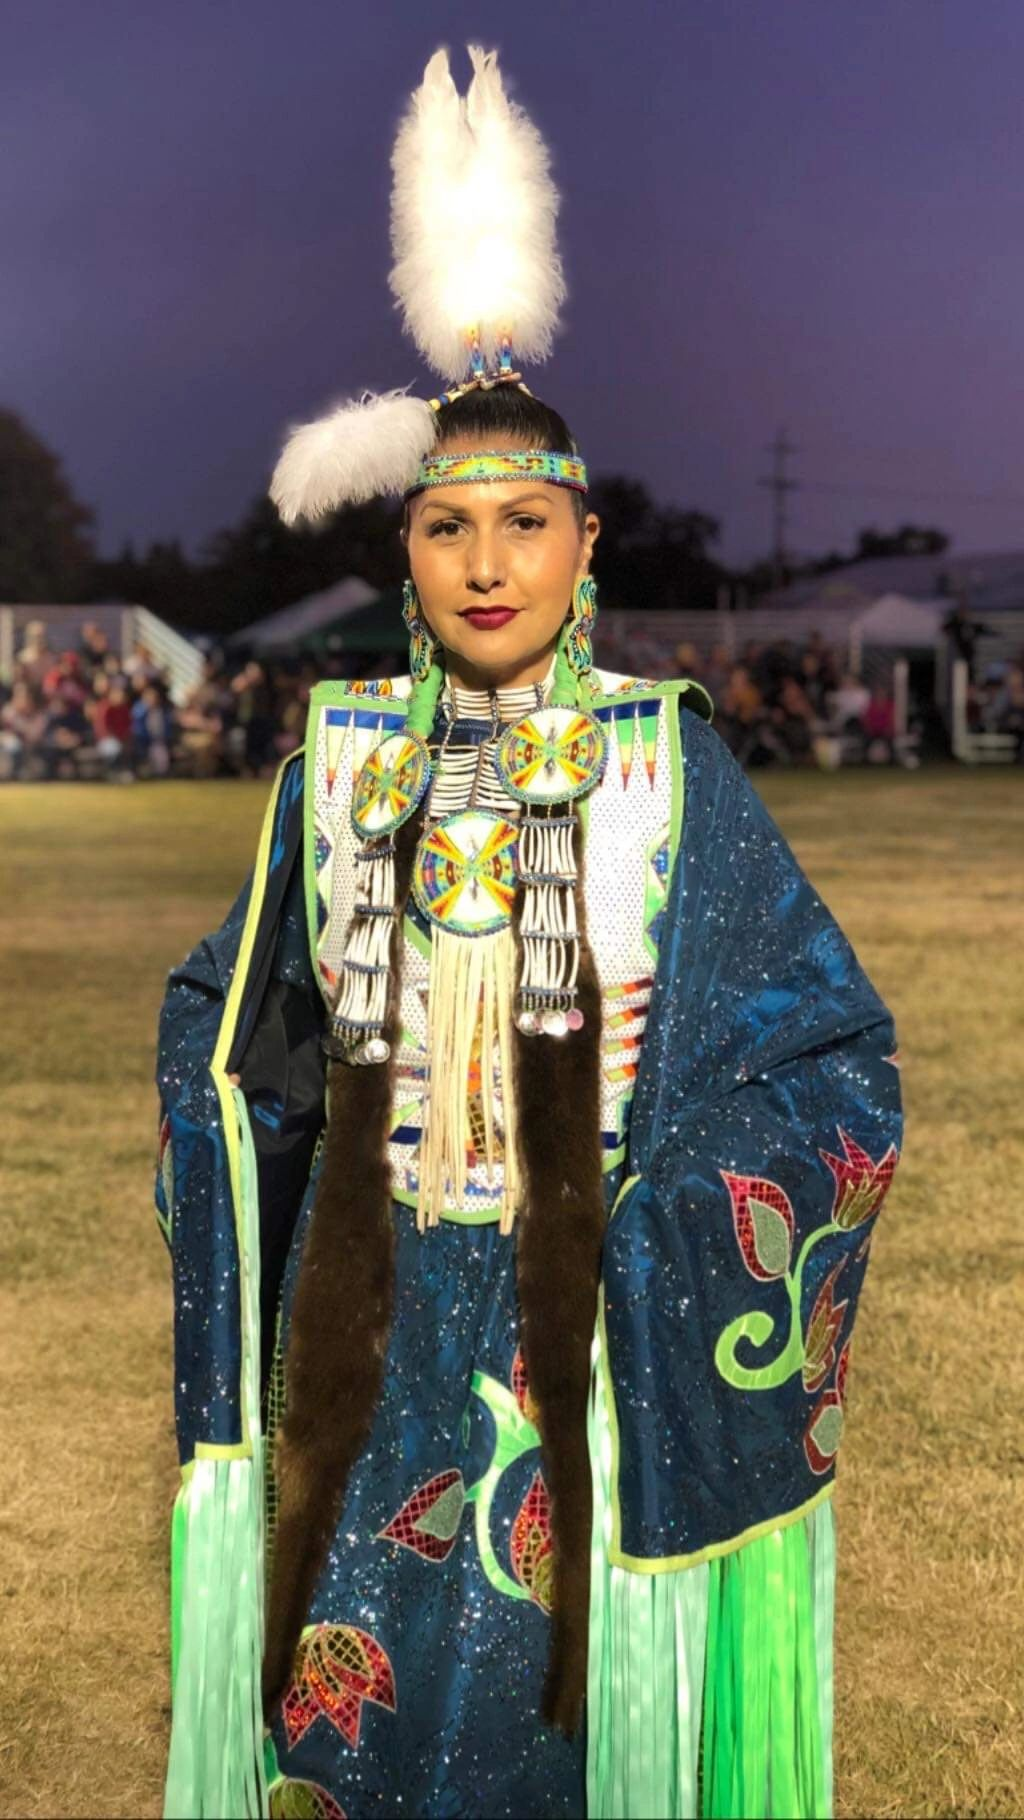 Native American woman in traditional cultural clothing